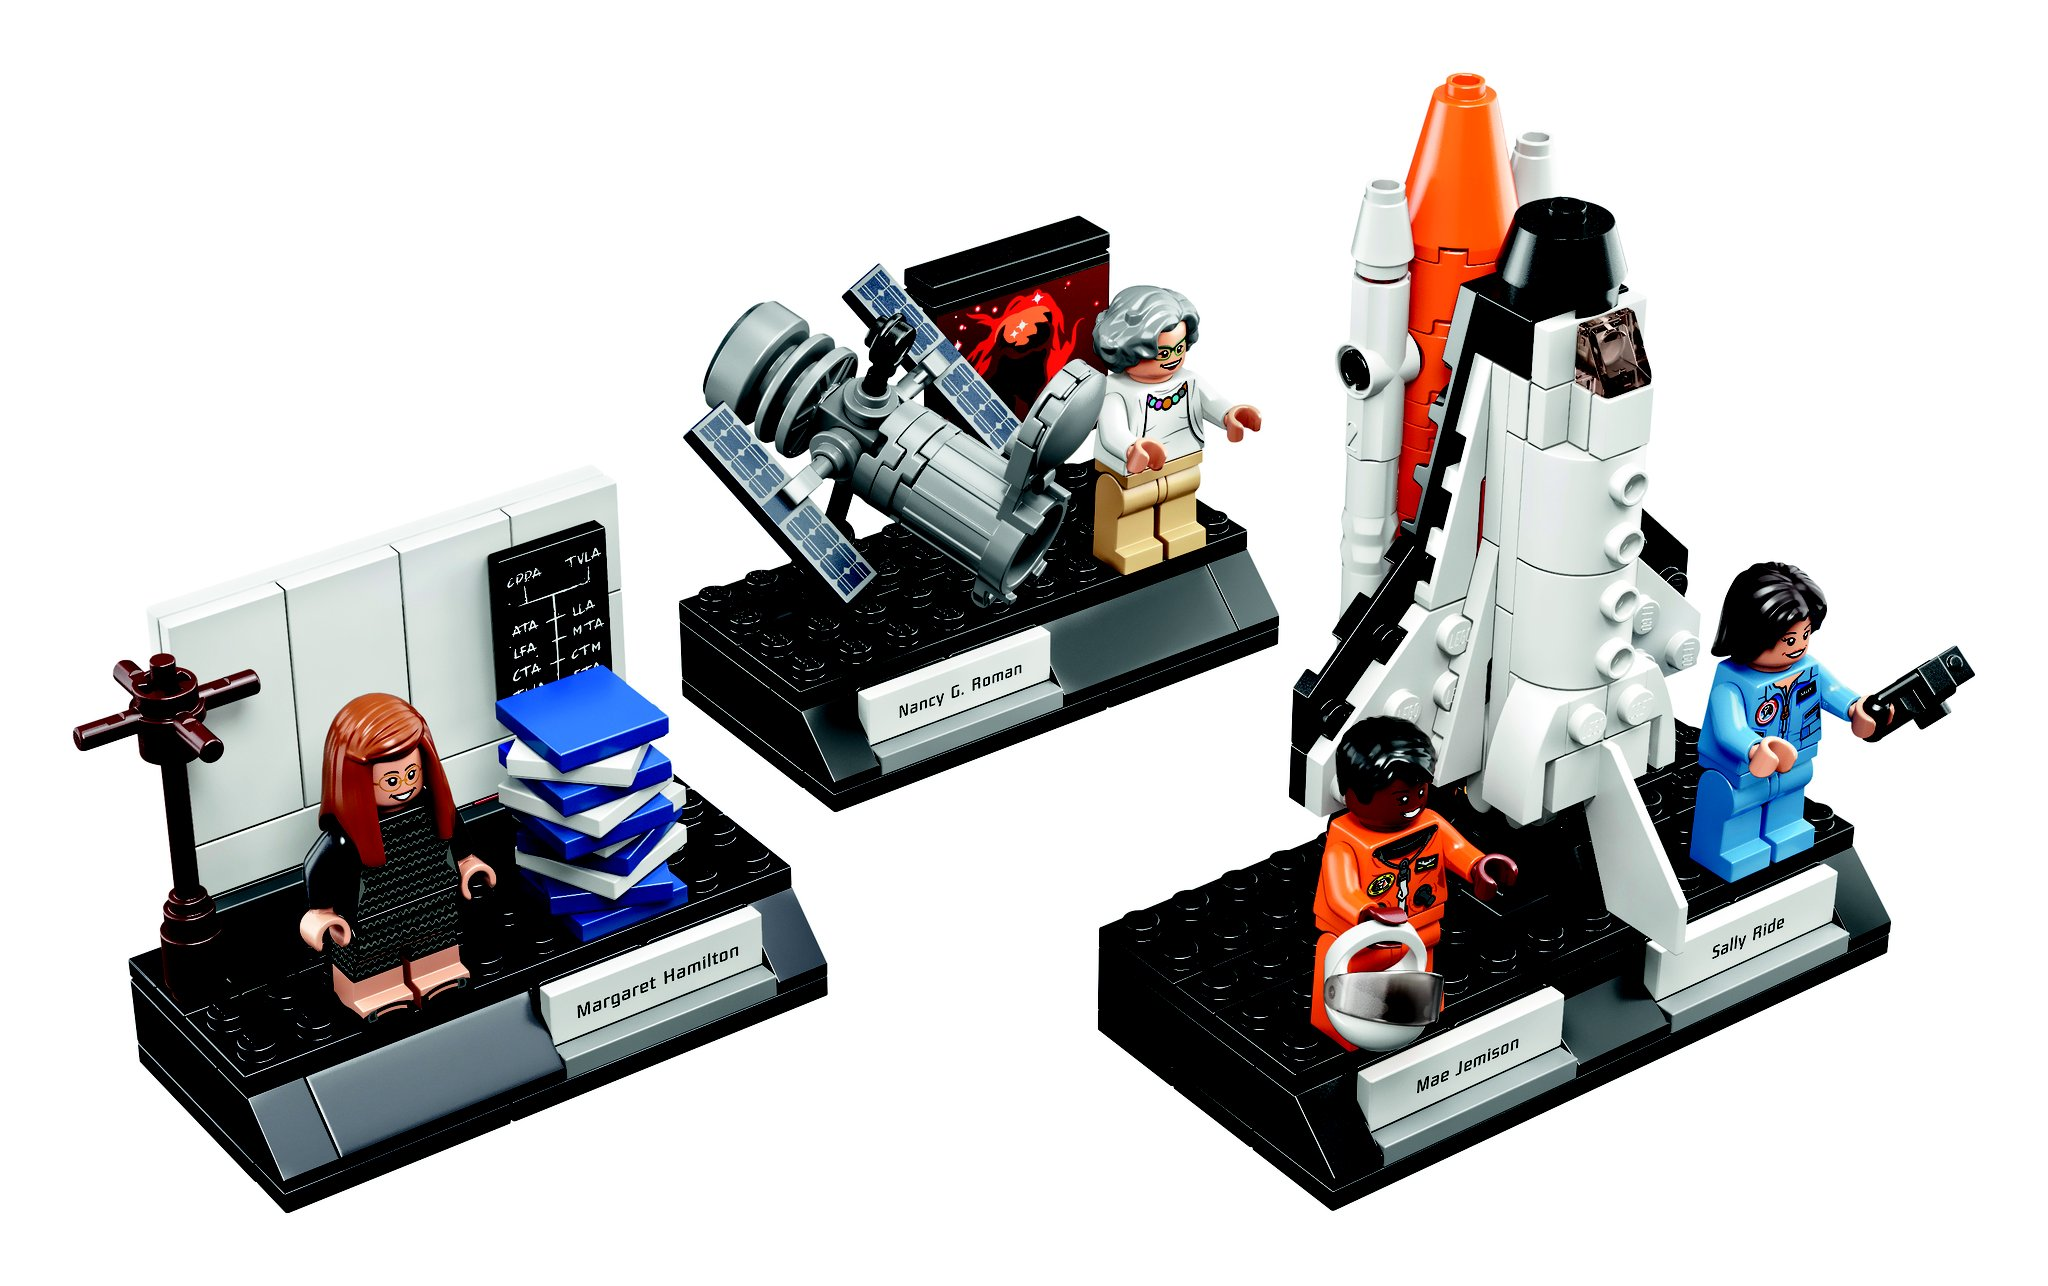 tmp 7bBvPJ 58dbd9355a2899de HighRes LEGO Ideas Women of NASA 1